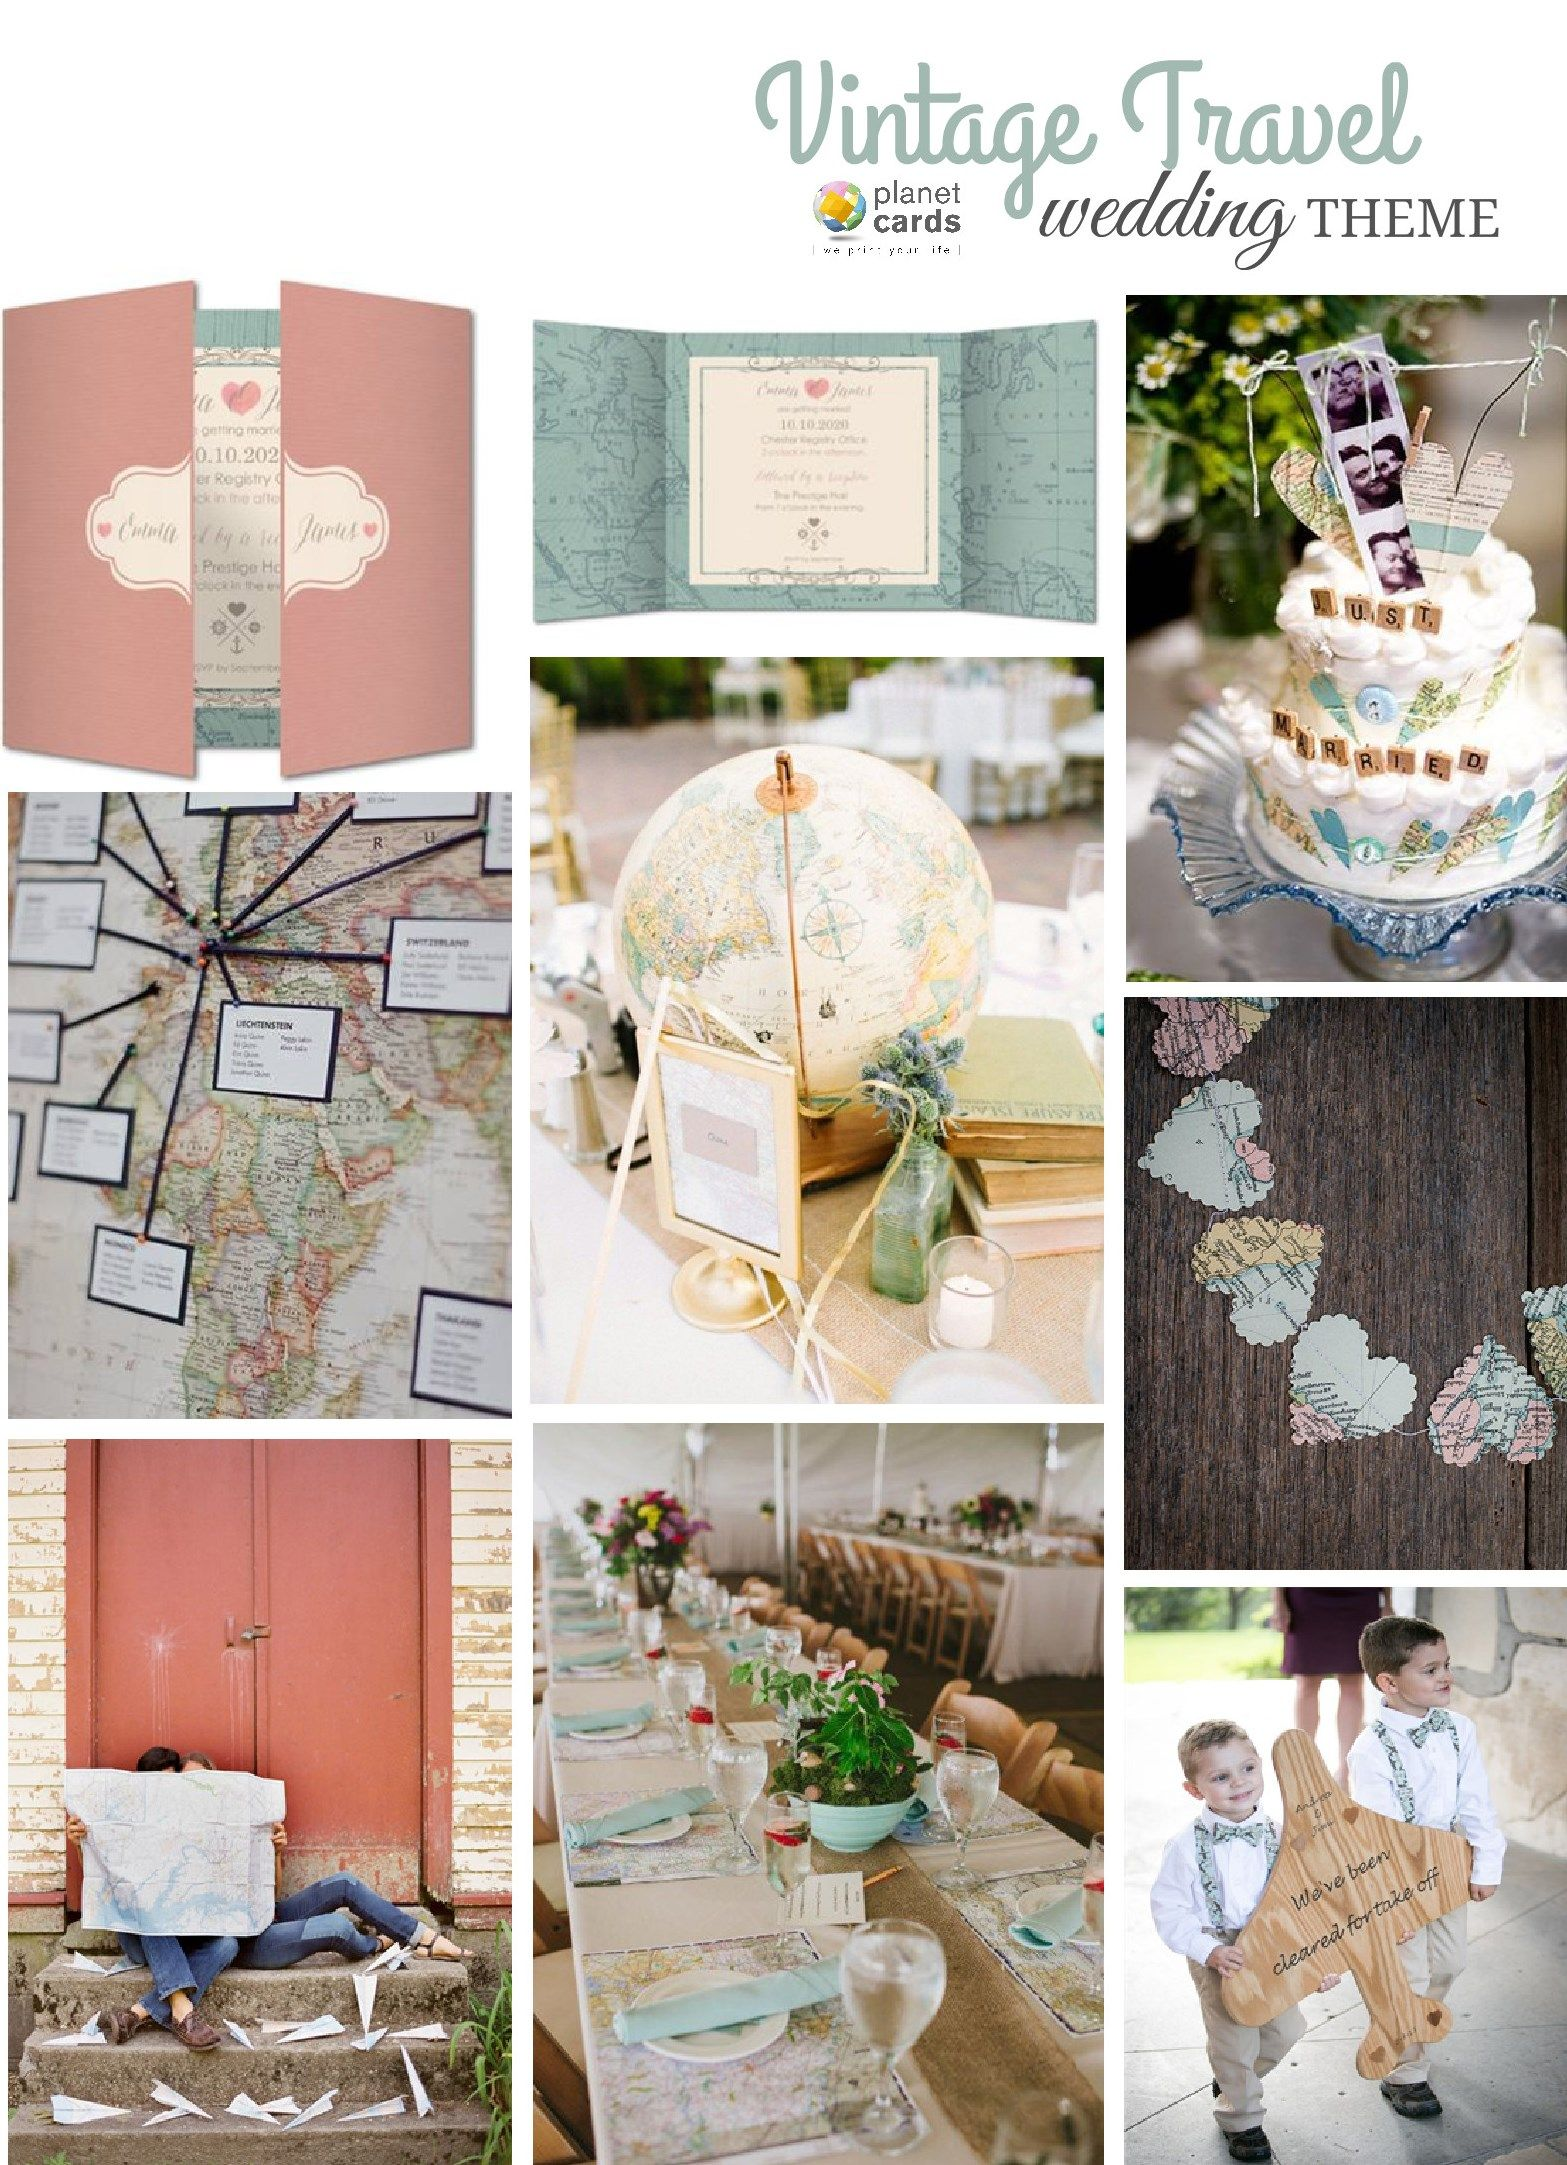 Let loveu0027s journey become your wedding theme